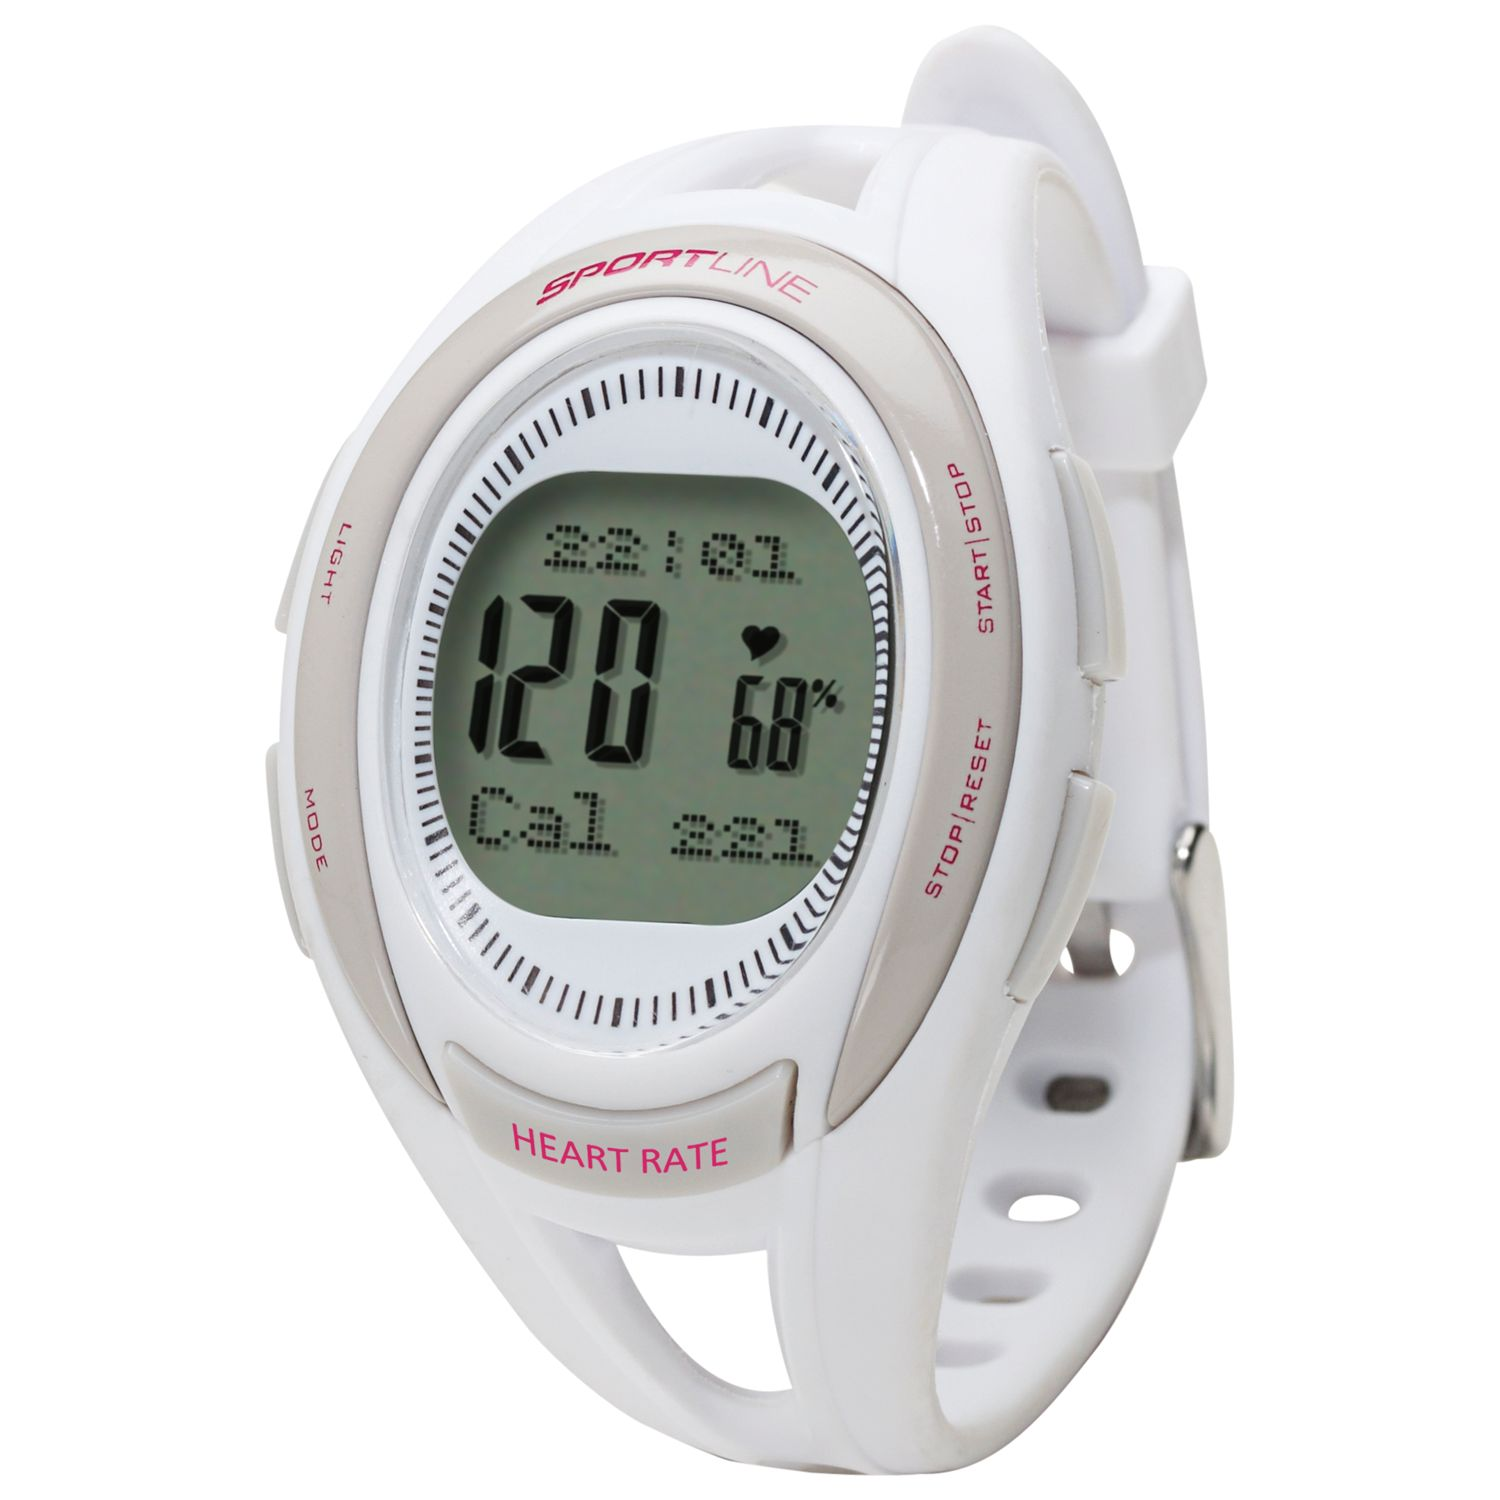 Sportline 660 Women's Cardio Heart Rate Watch Instruction Manual